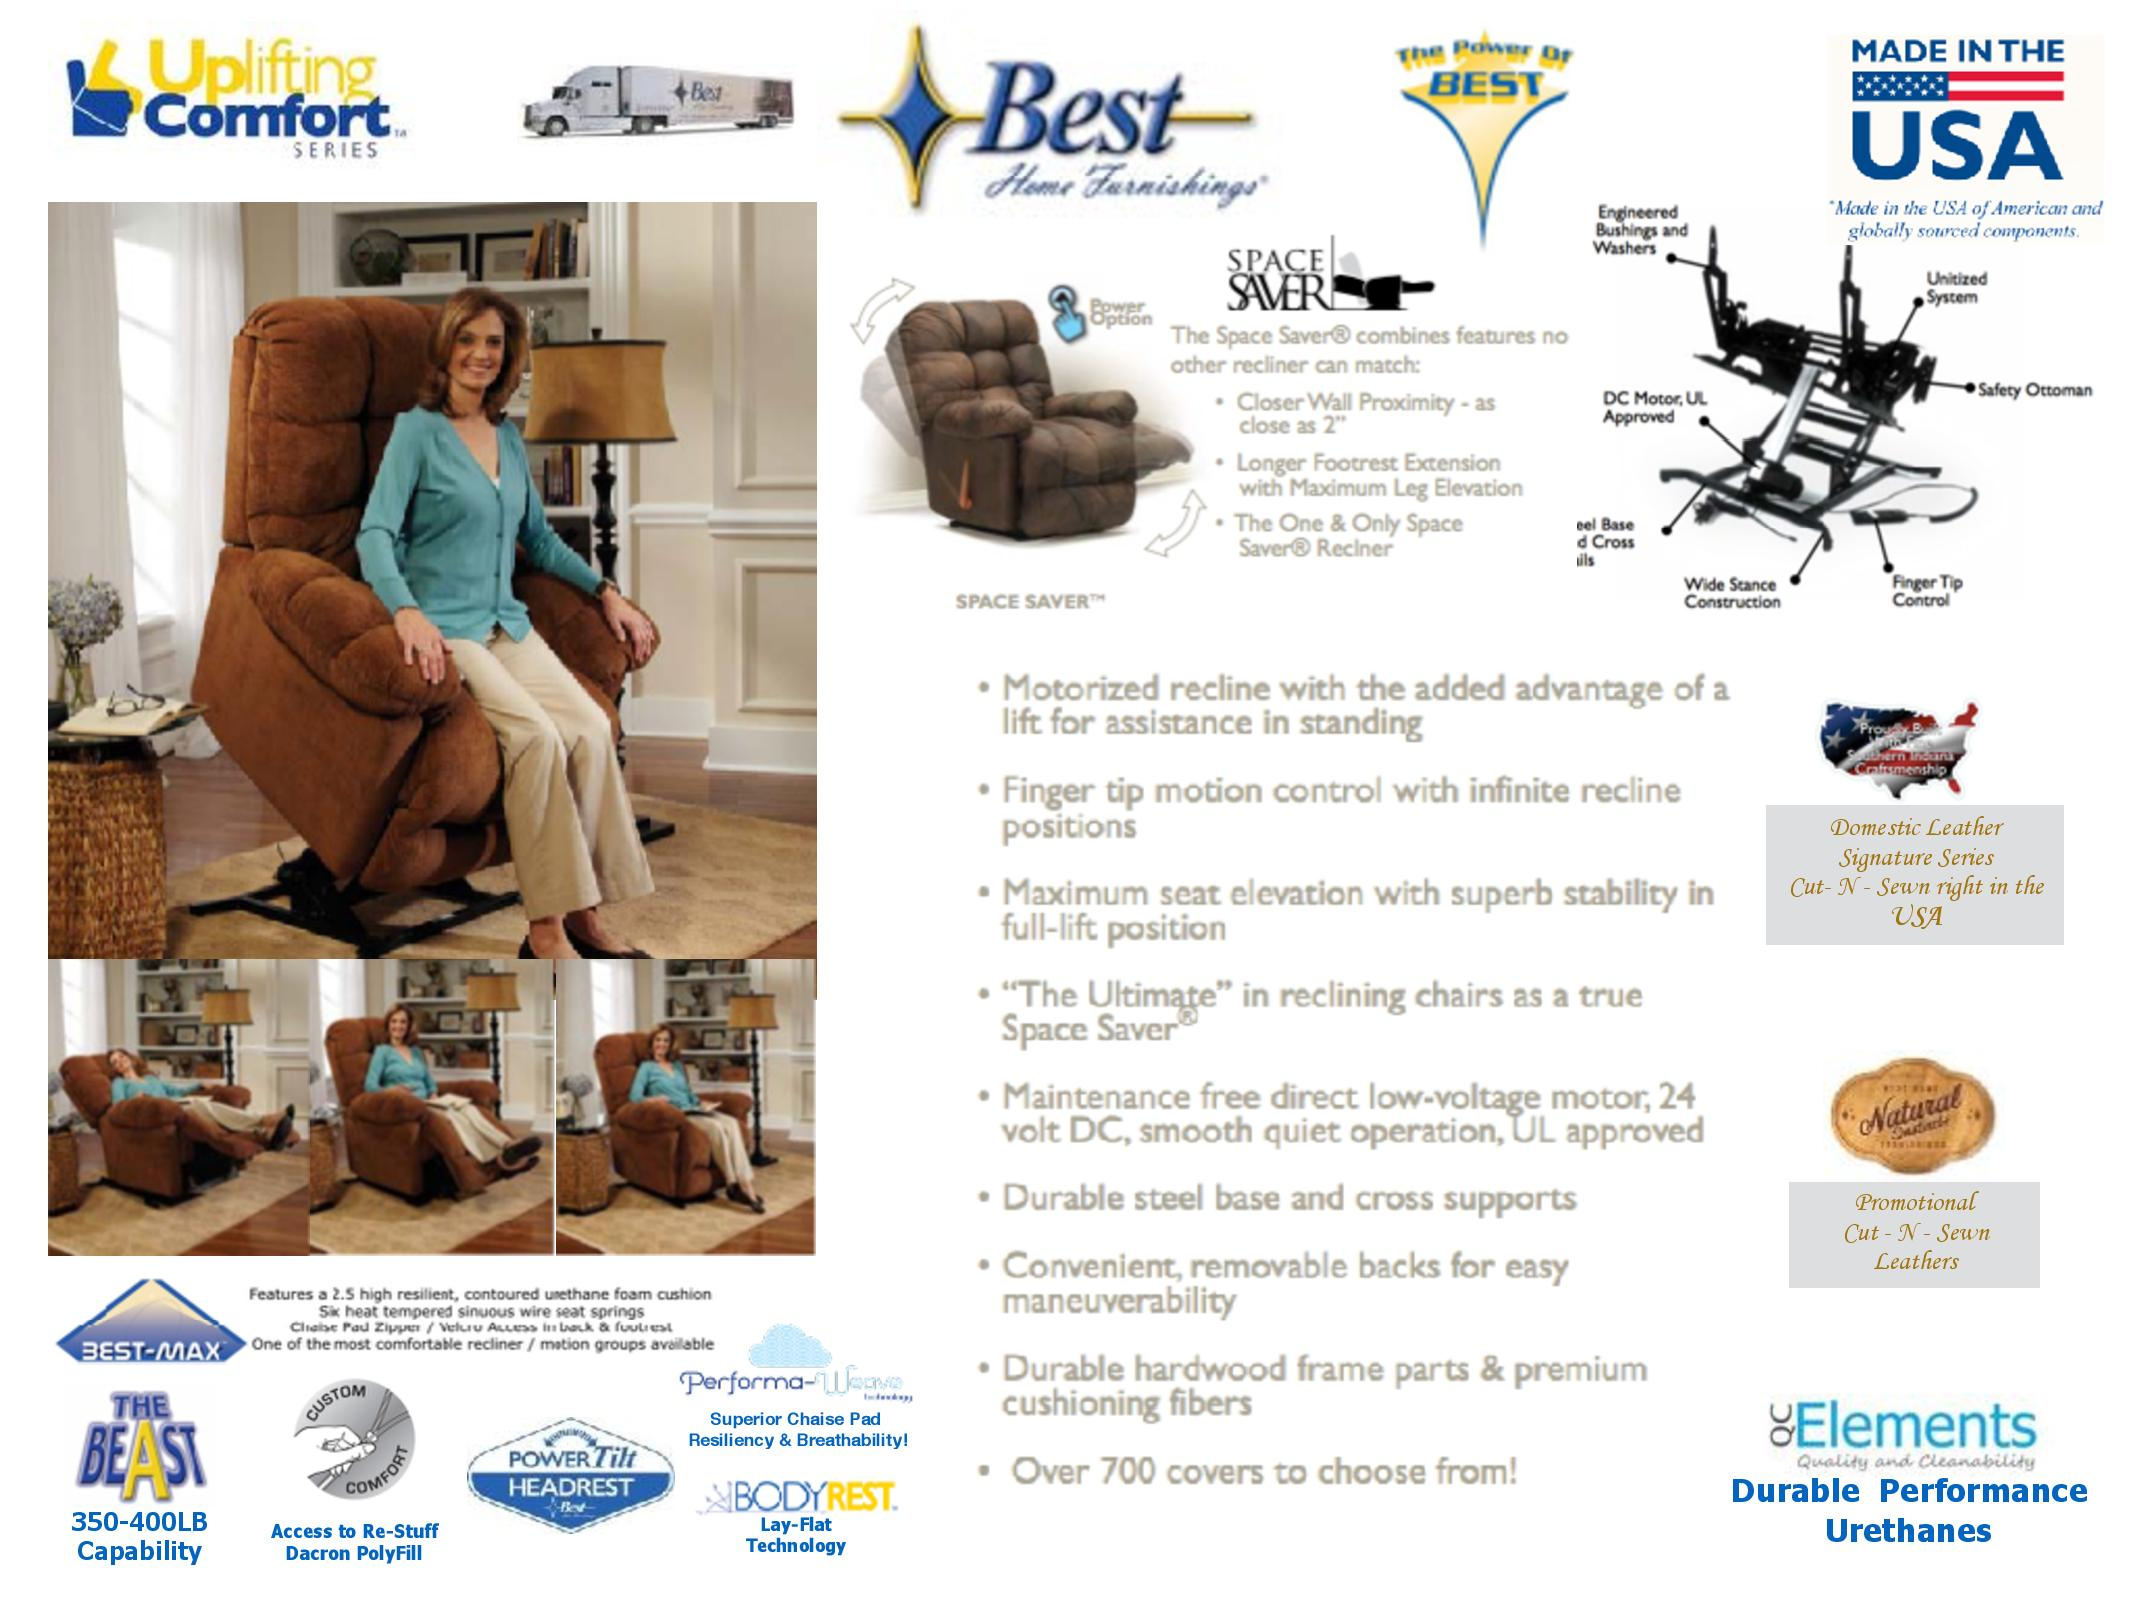 Best Home Furnishings Lift Chairs MARS MEDICAL New Lenox IL 800